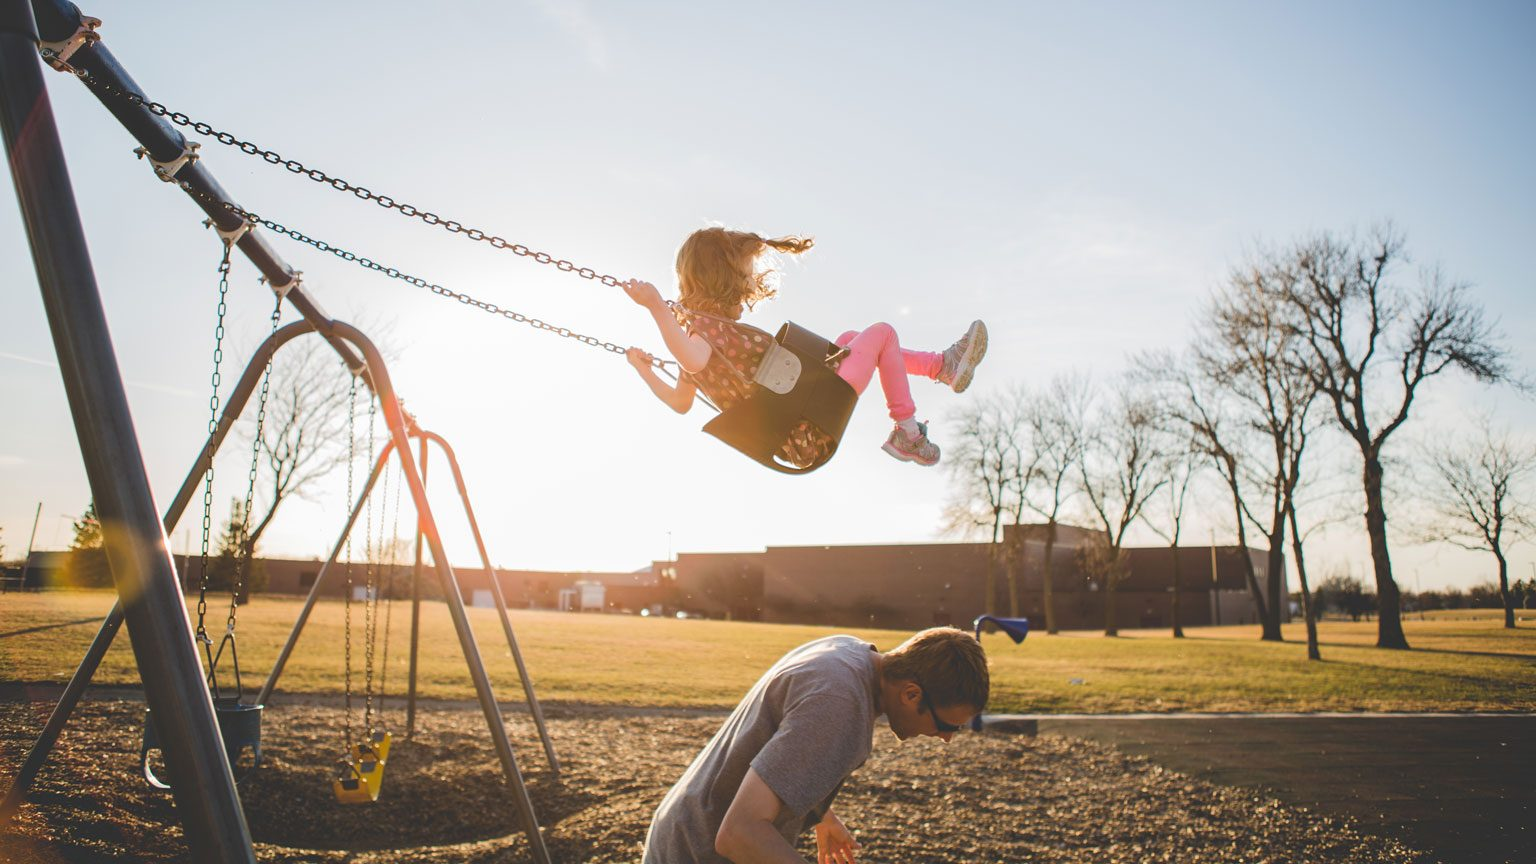 Man ducks bellow his daughter as he gives her a big push on a public park swing set